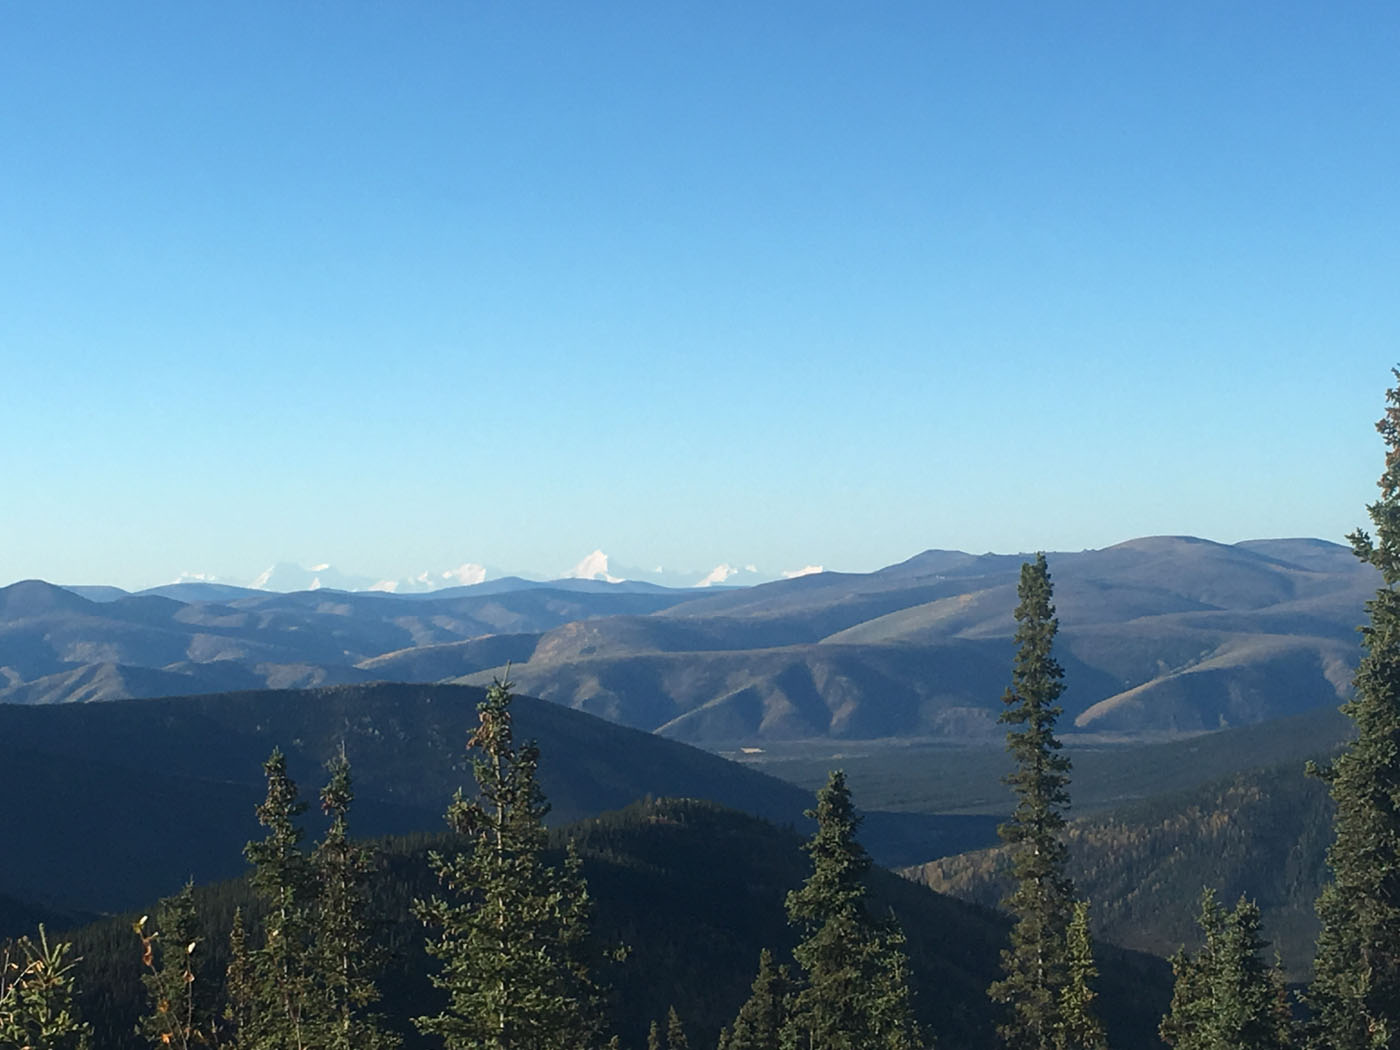 Can you see Denali in the distance?